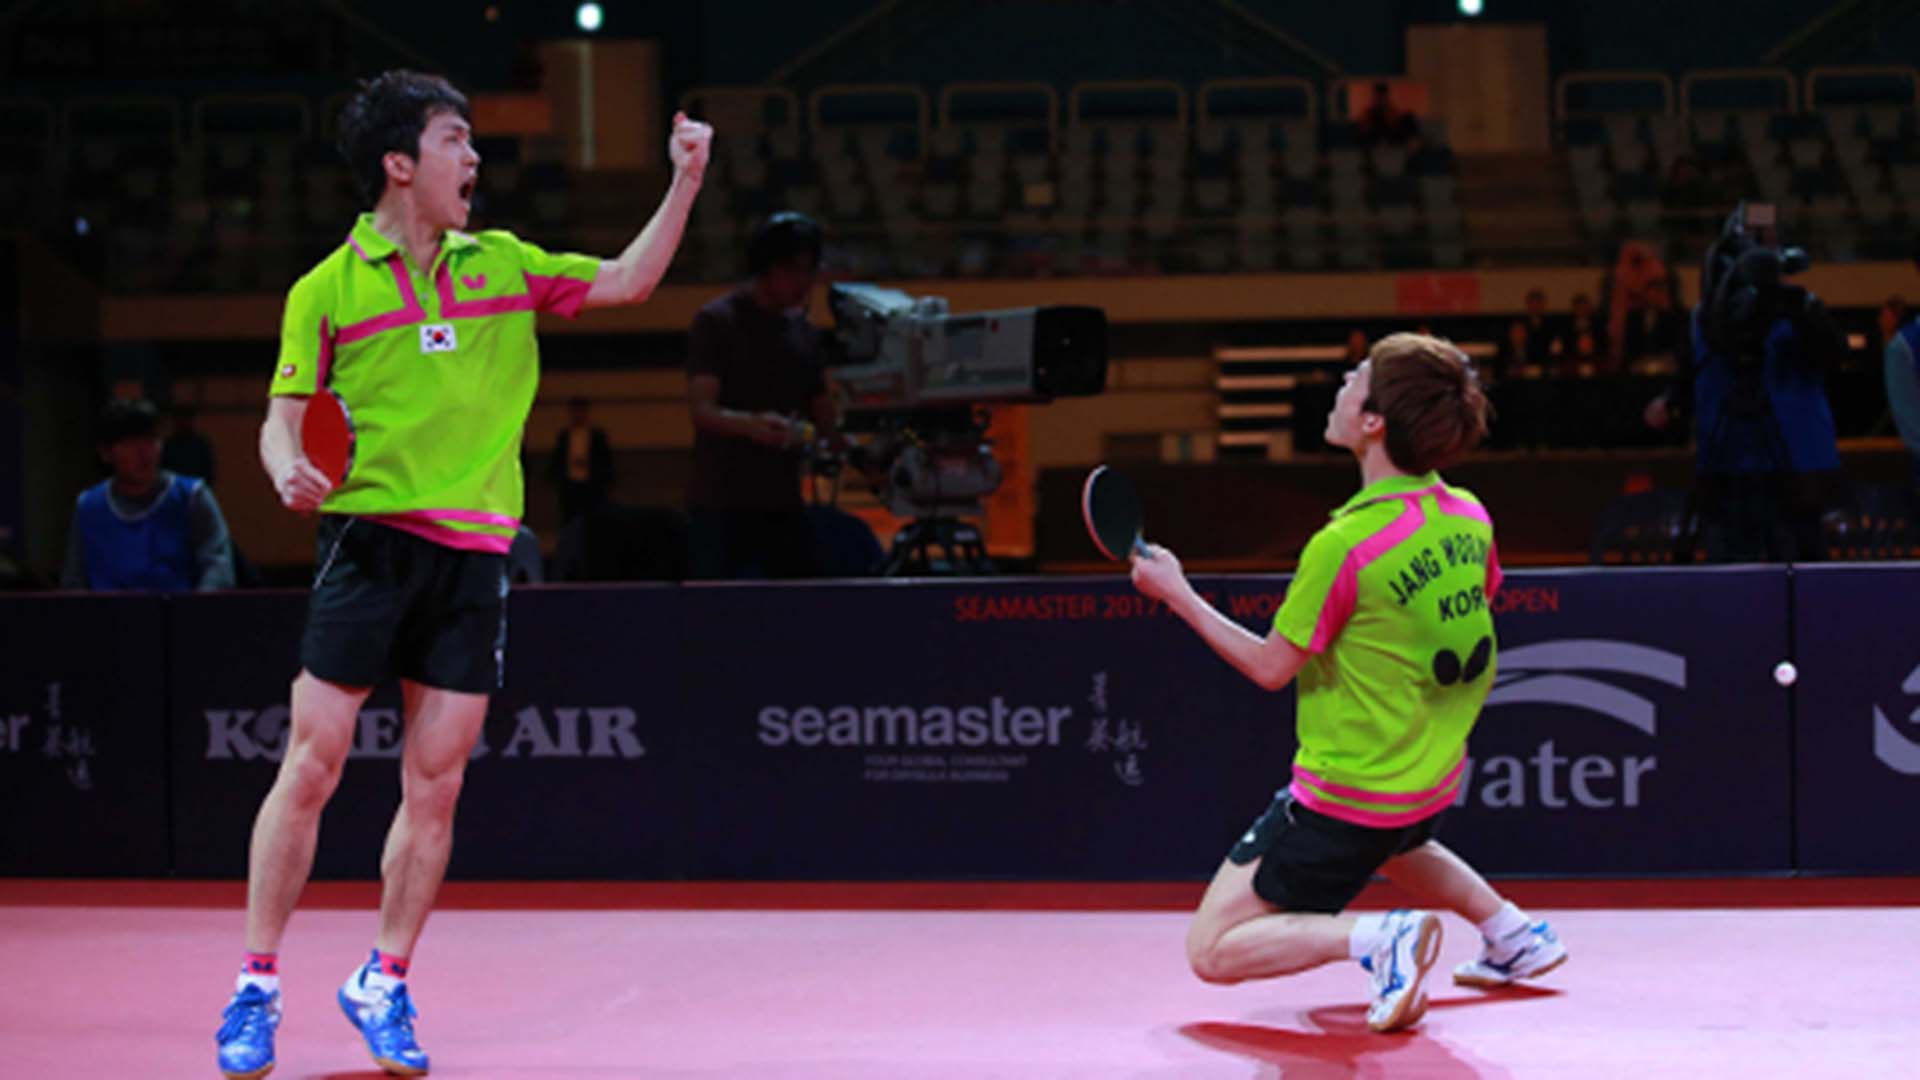 Cities announced for 2018 ittf world tour butterfly online - International table tennis federation ittf ...